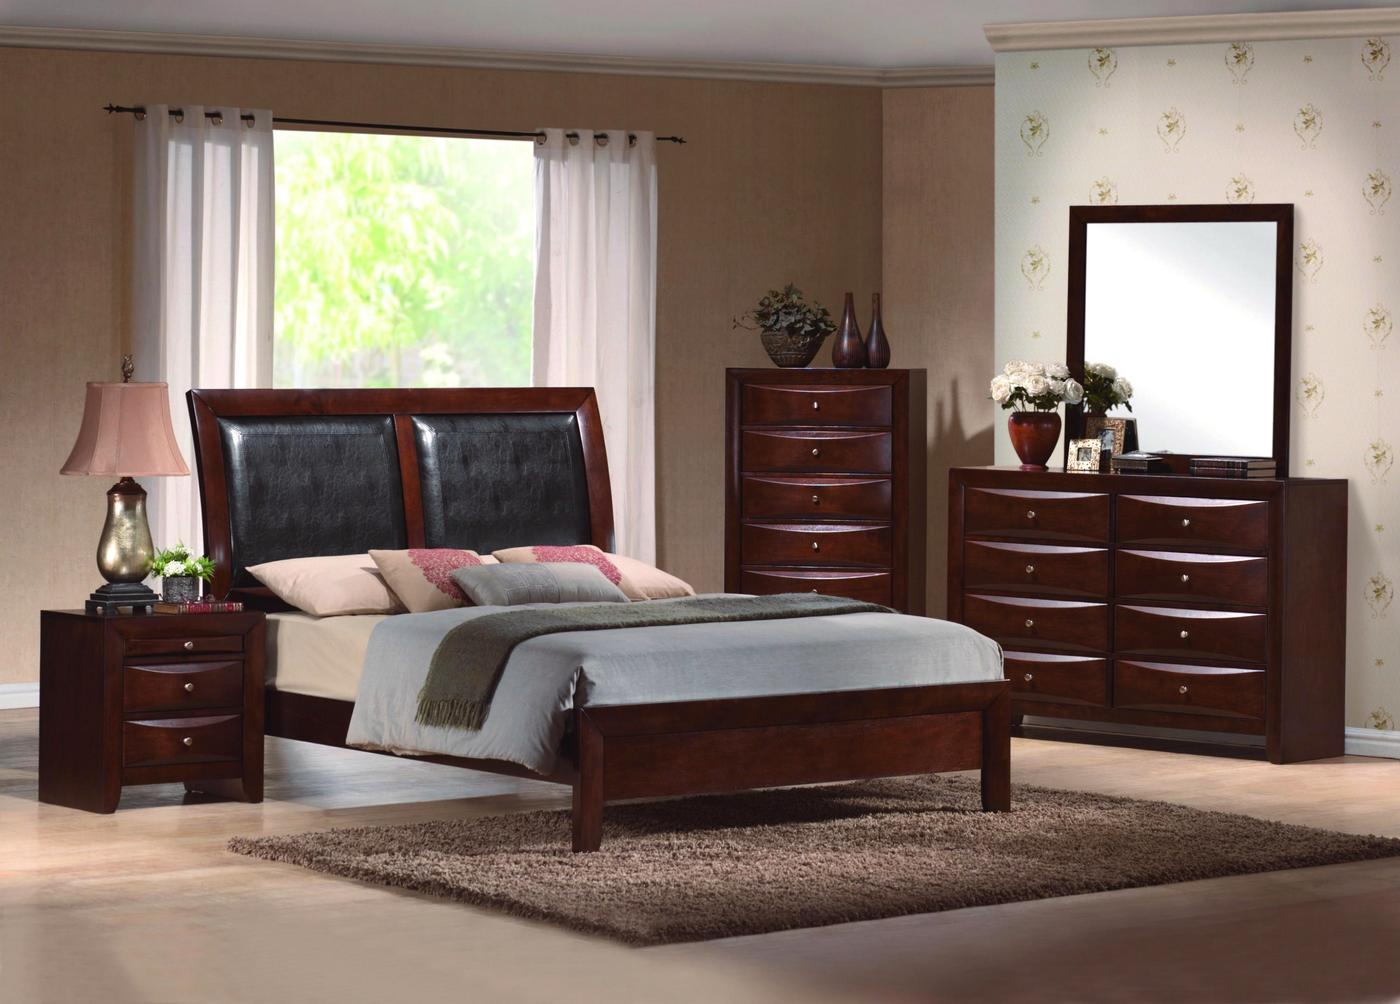 Emily Upholstered Low Profile Bed Contemporary Bedroom SetFree ShippingShopFactoryDirectcom